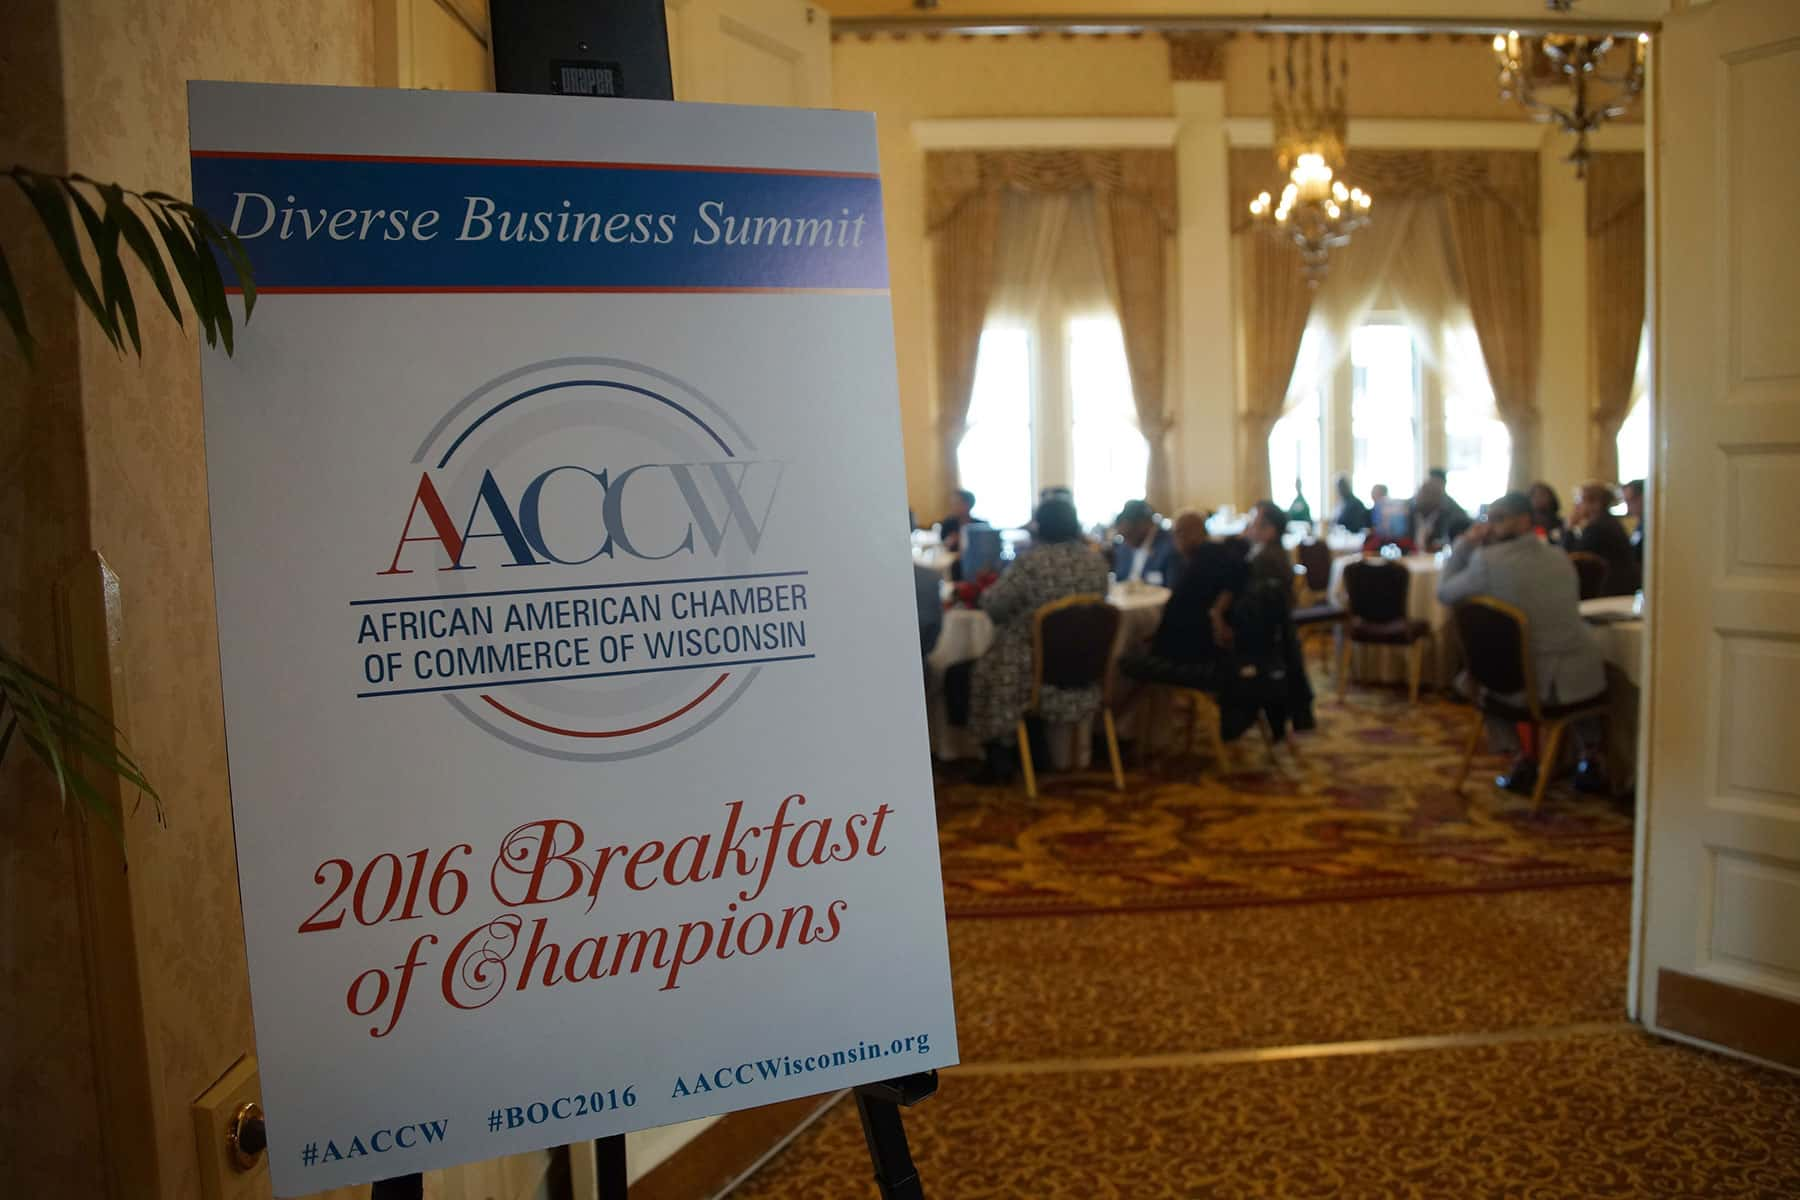 050316_AACC_Breakfast_1036